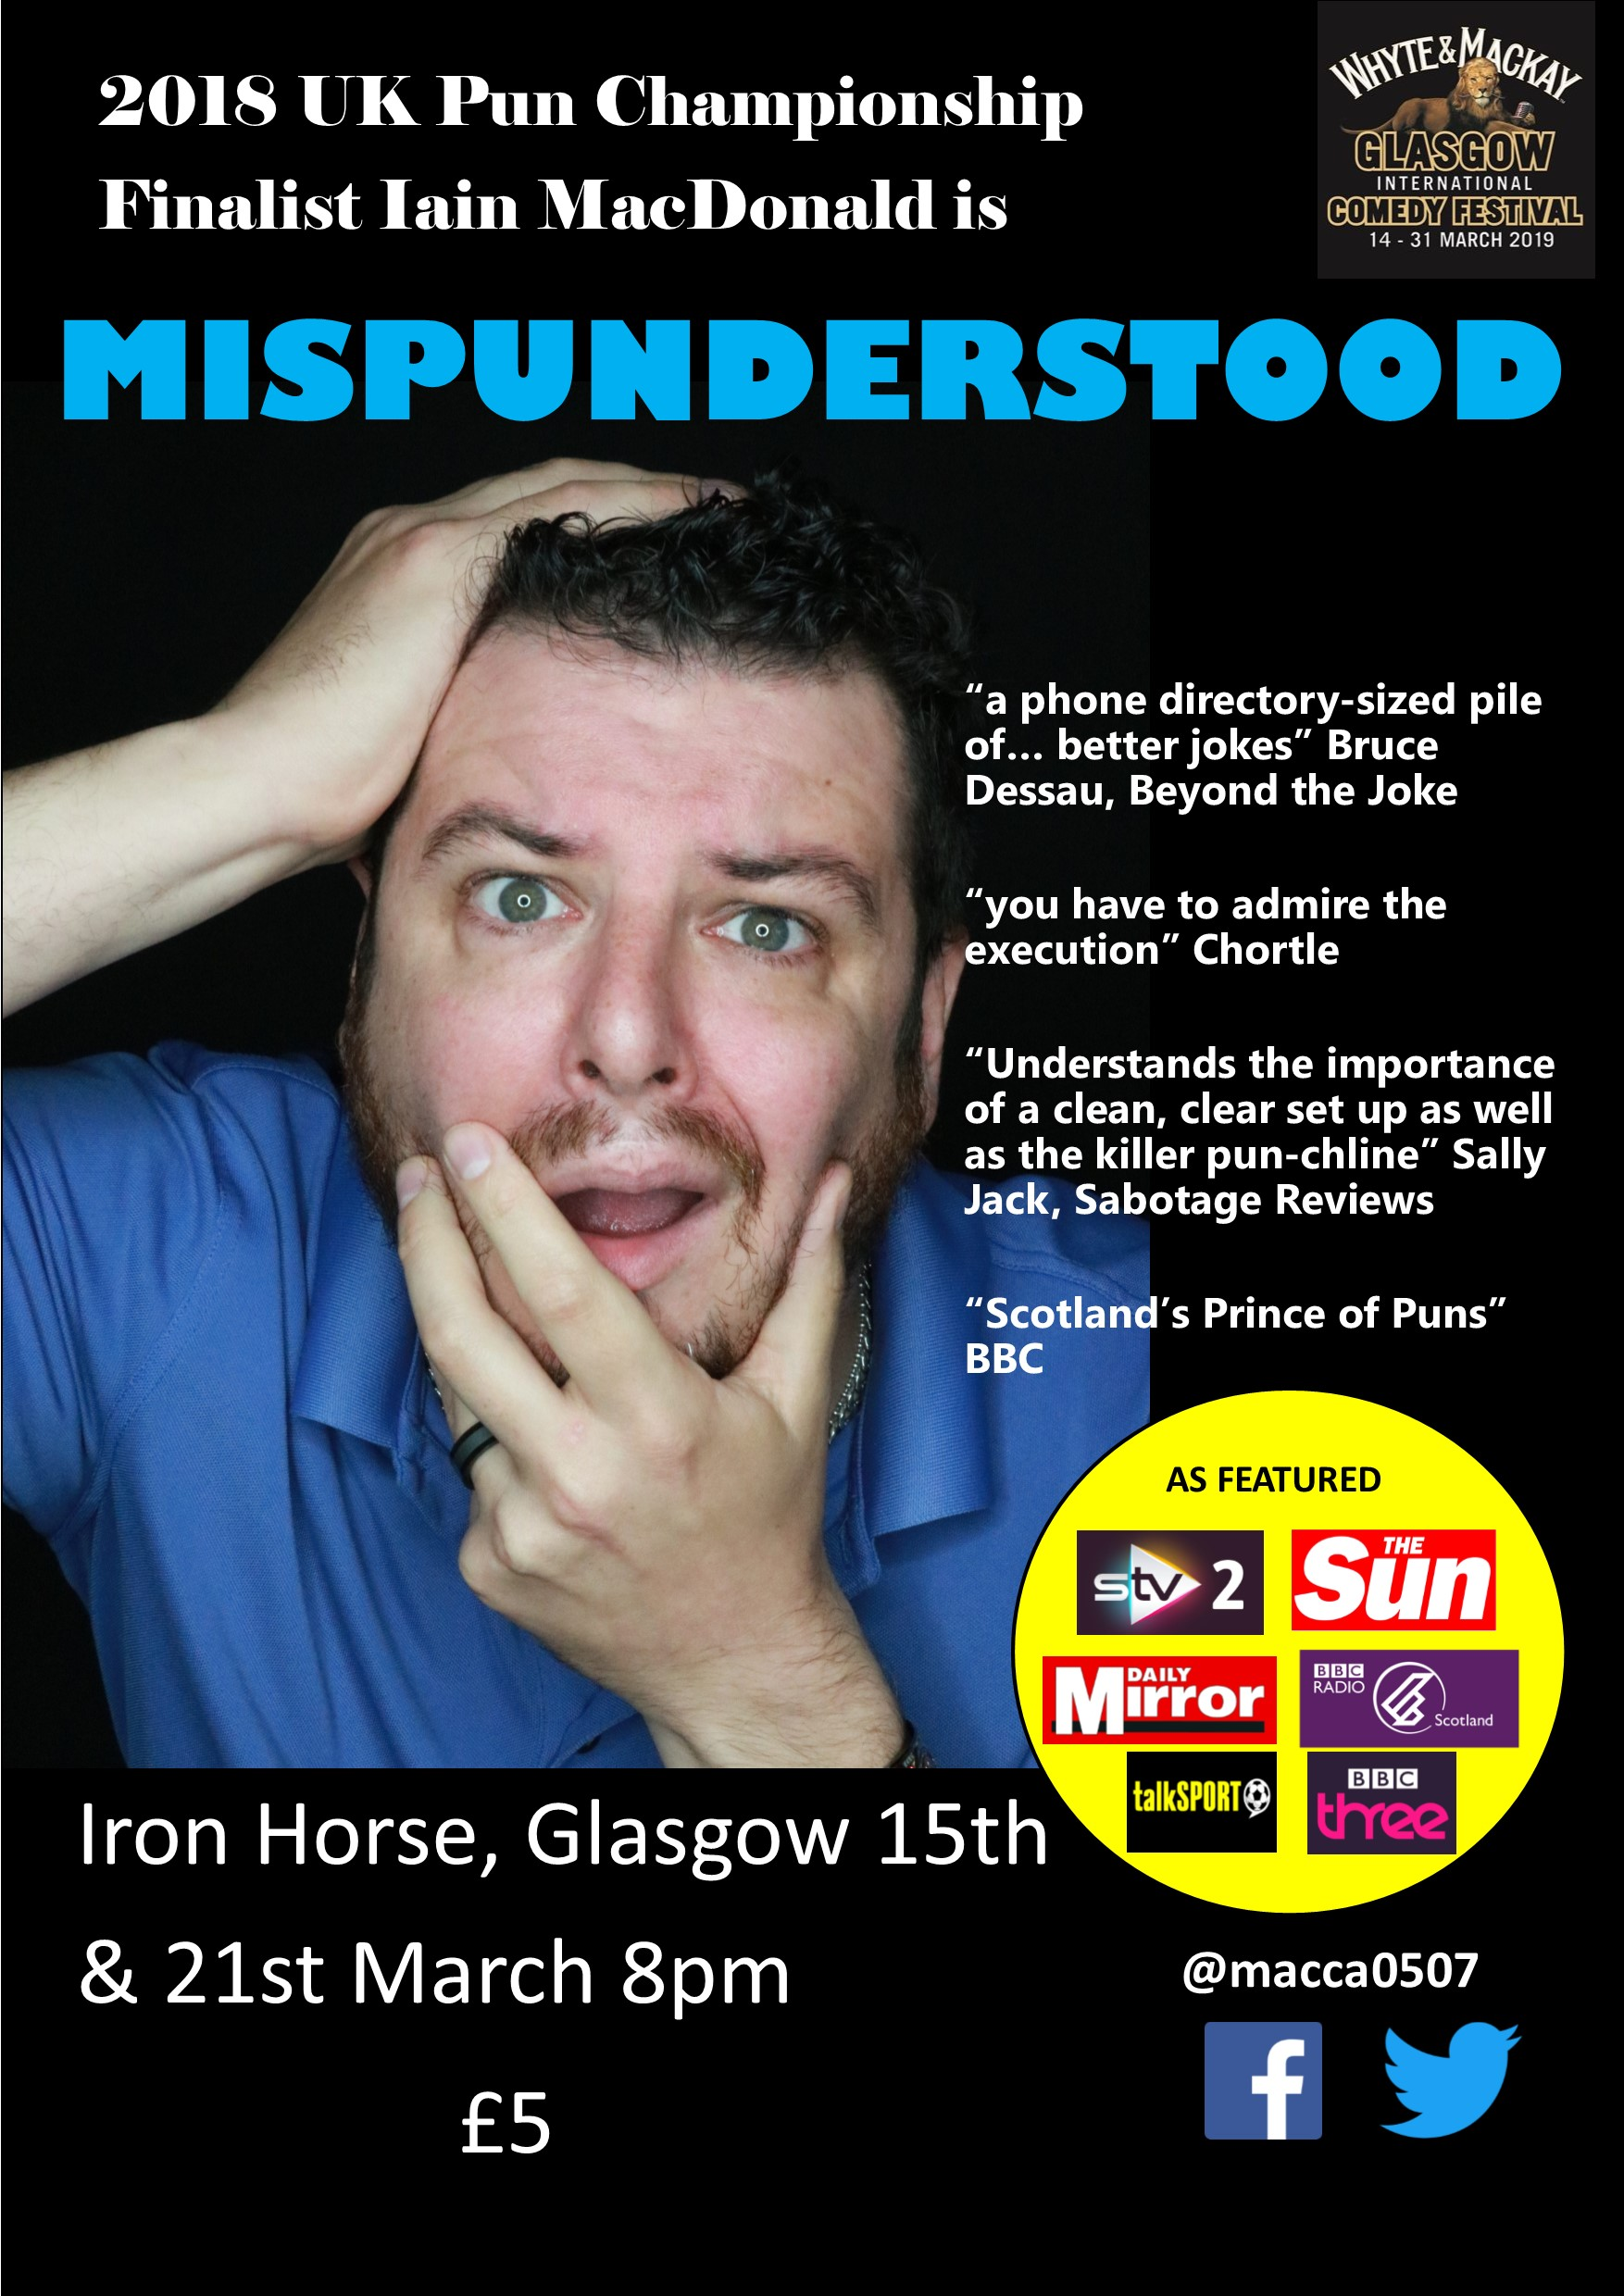 Mispunderstood  iron horse no seetickets